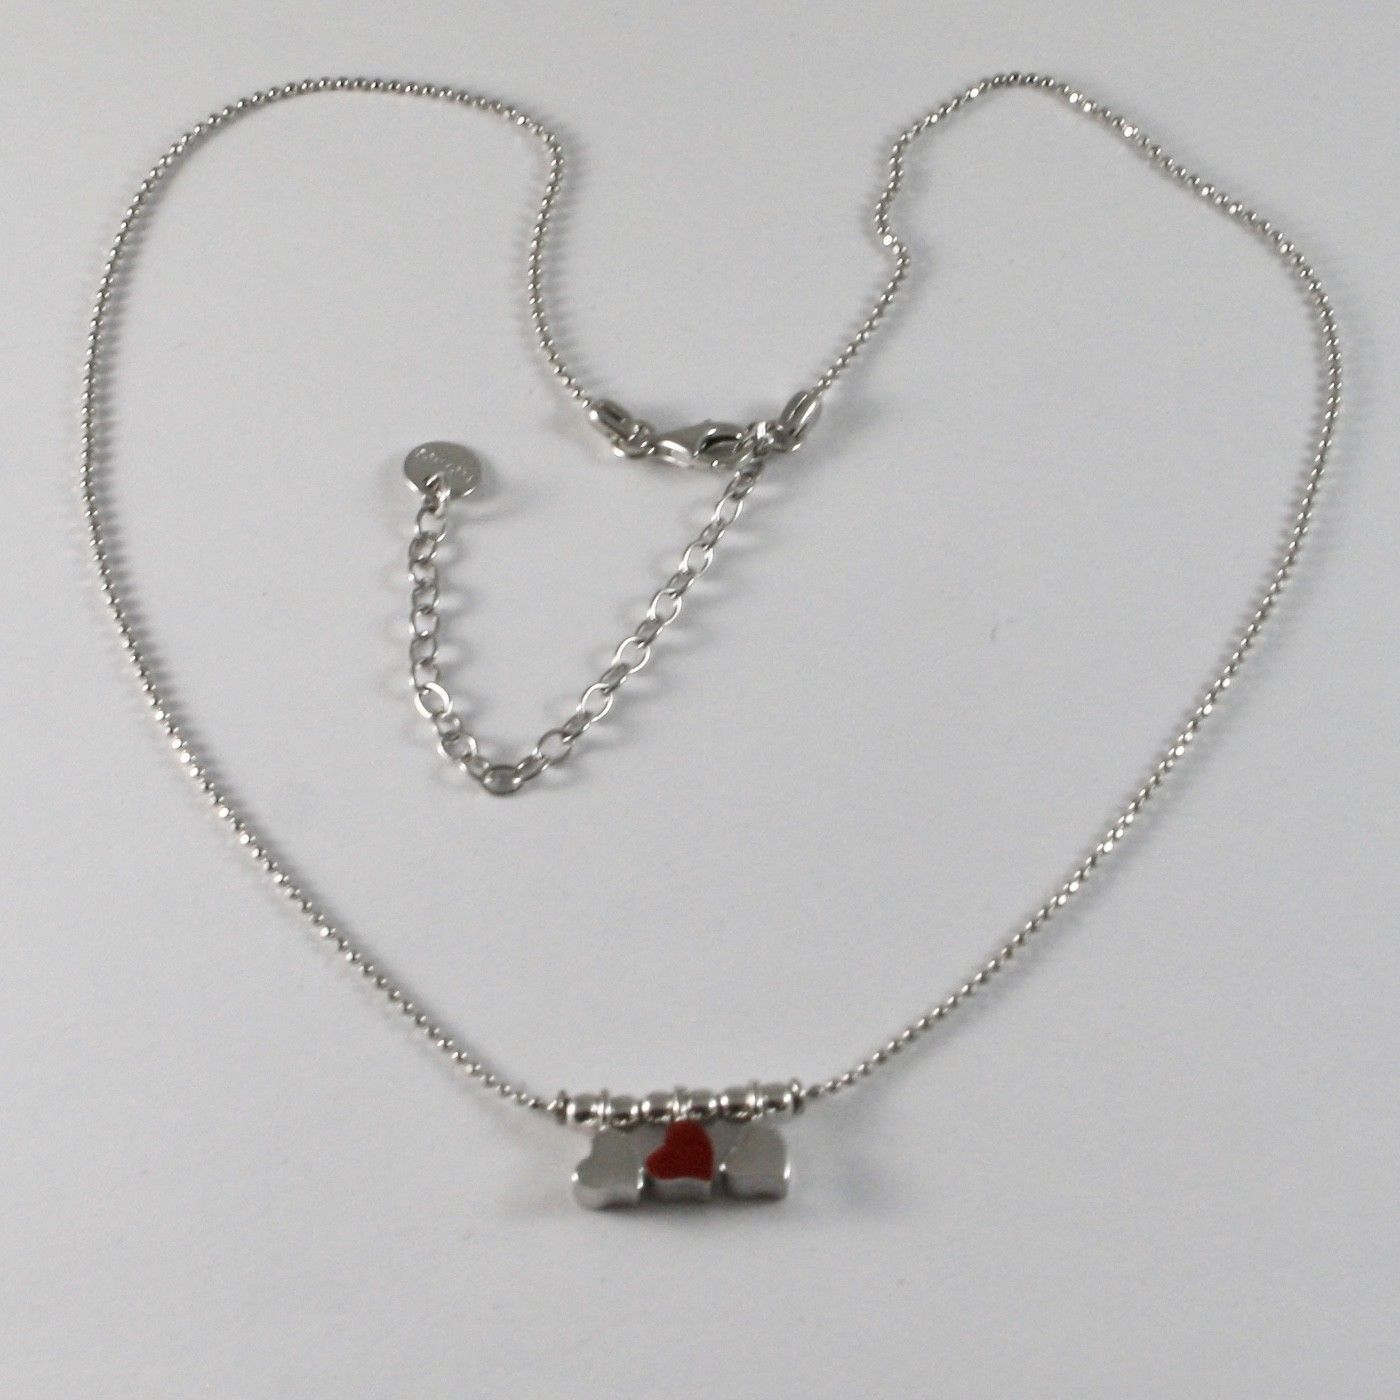 925 Sterling Silver Necklace Jack&co with Hearts Transparencies and Enamelled